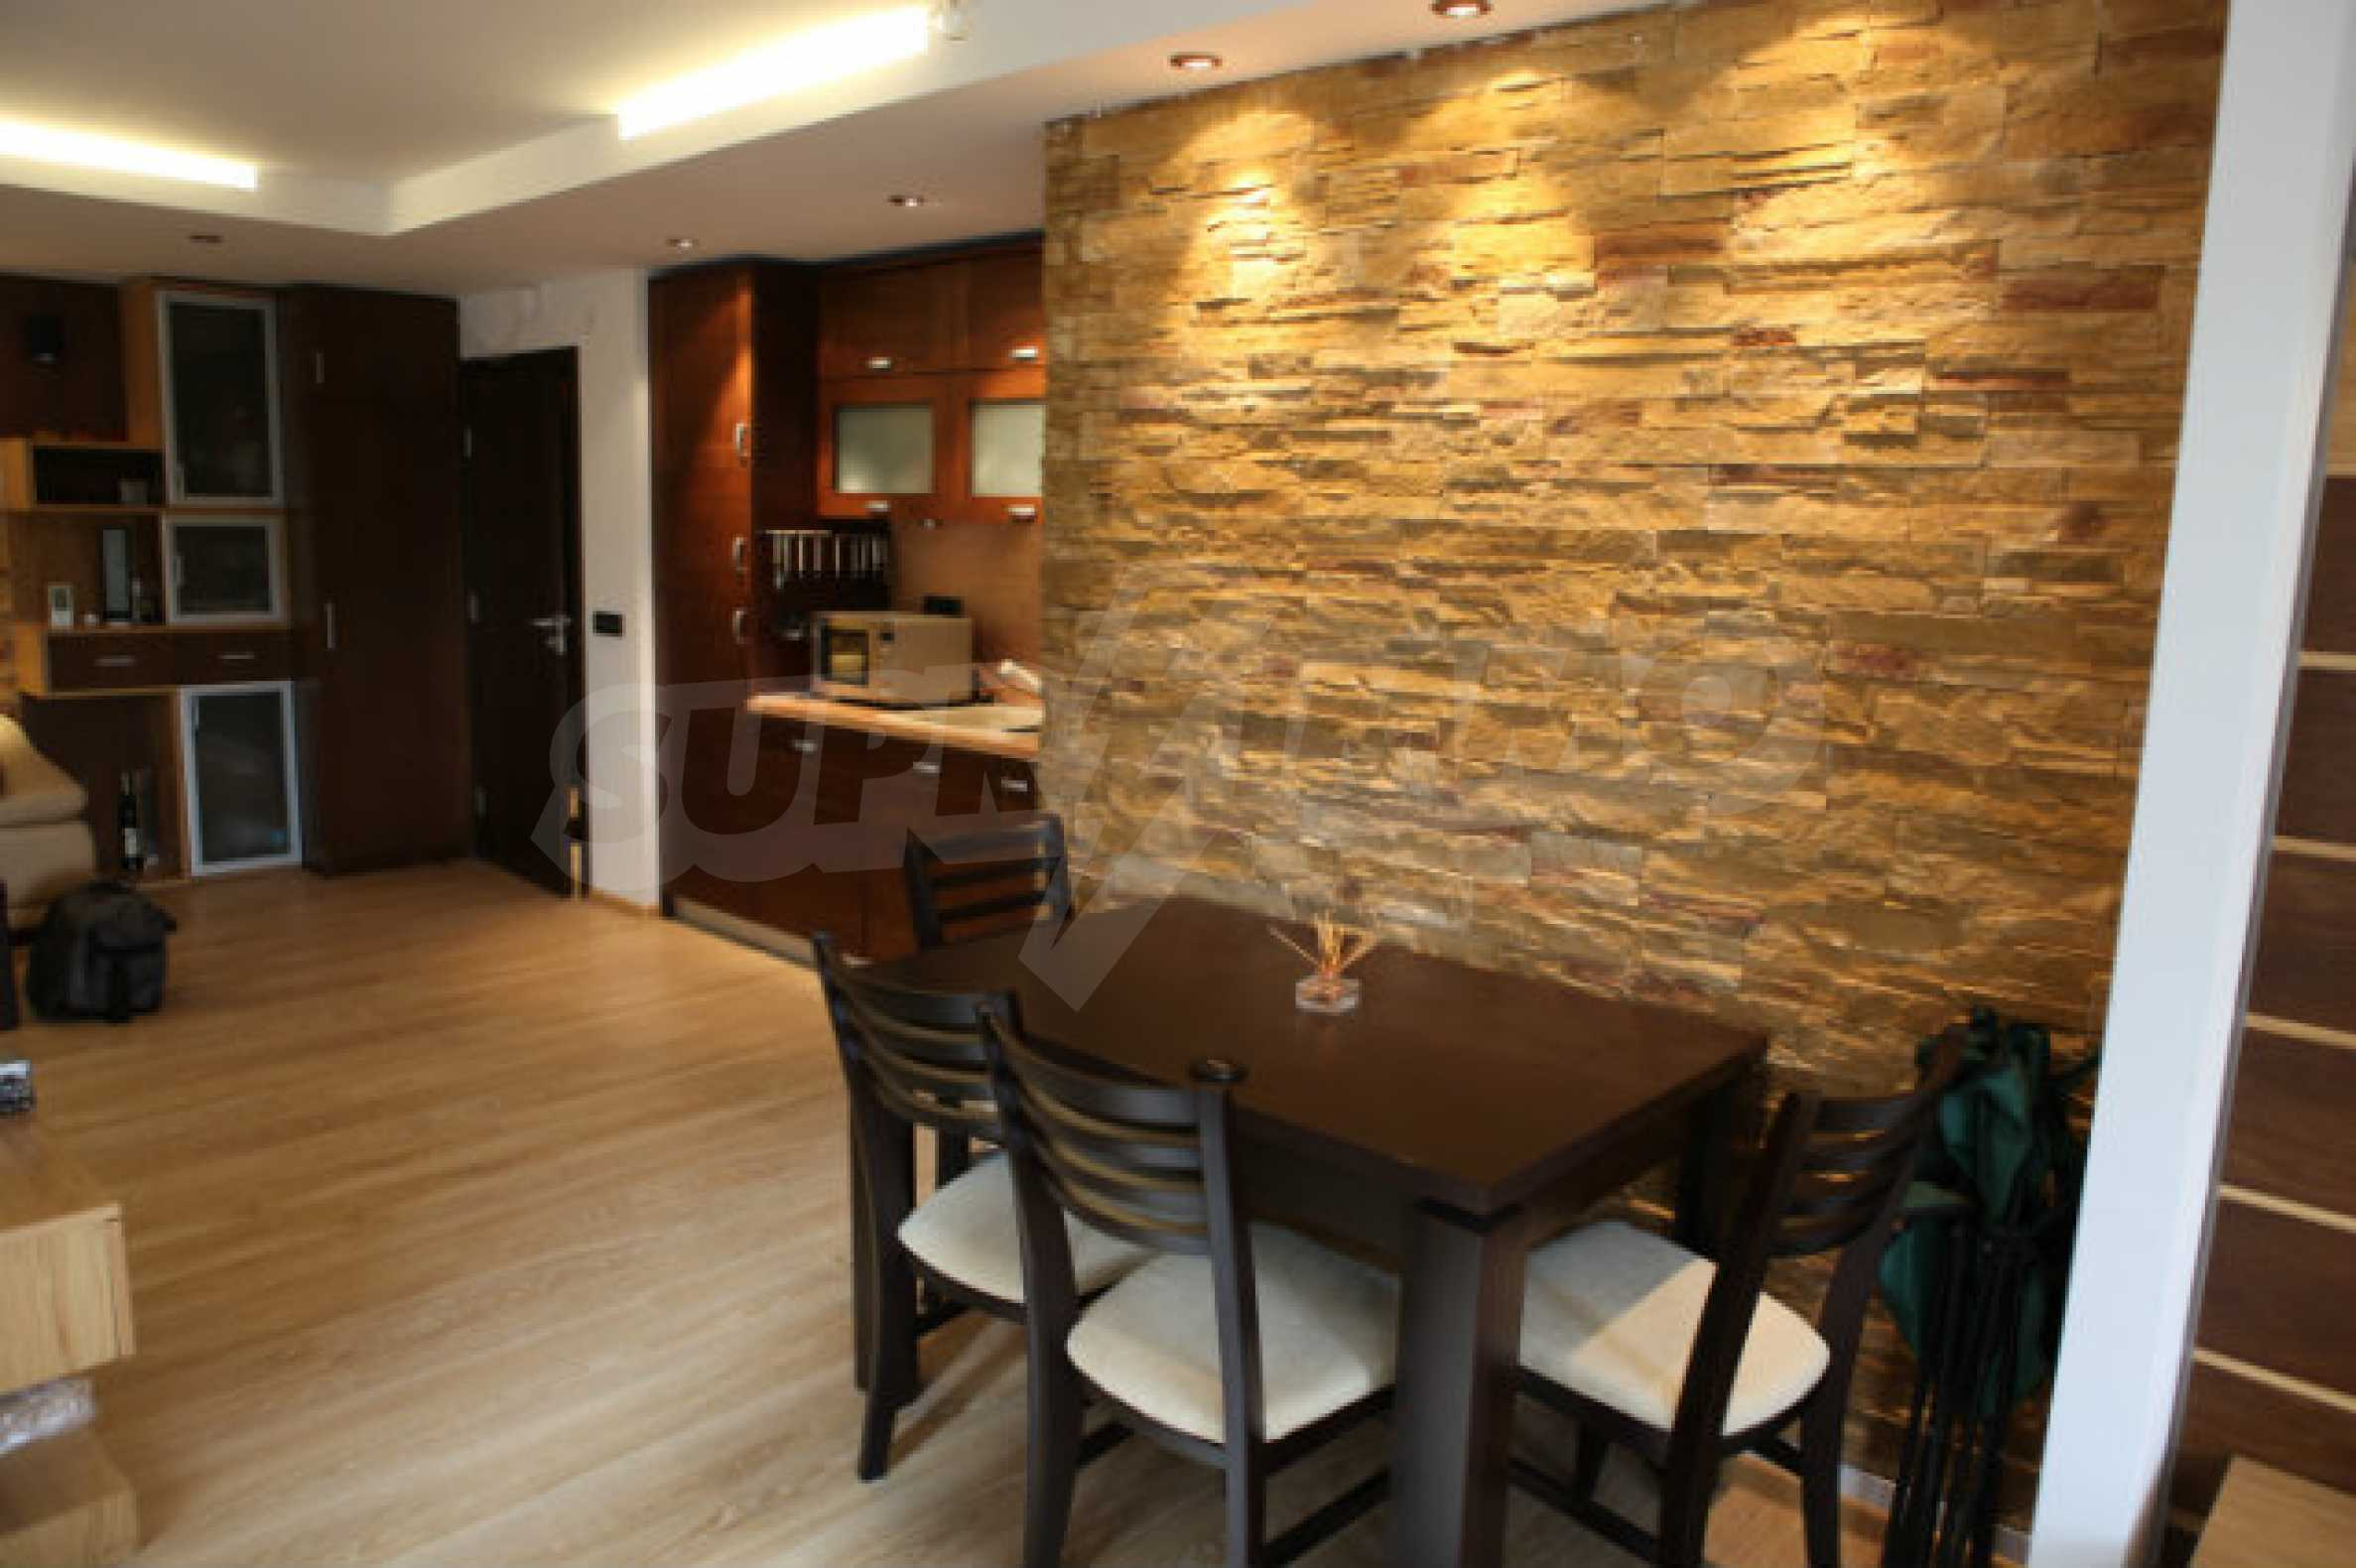 Stylish one-bedroom apartment in Central VIP Residence 2